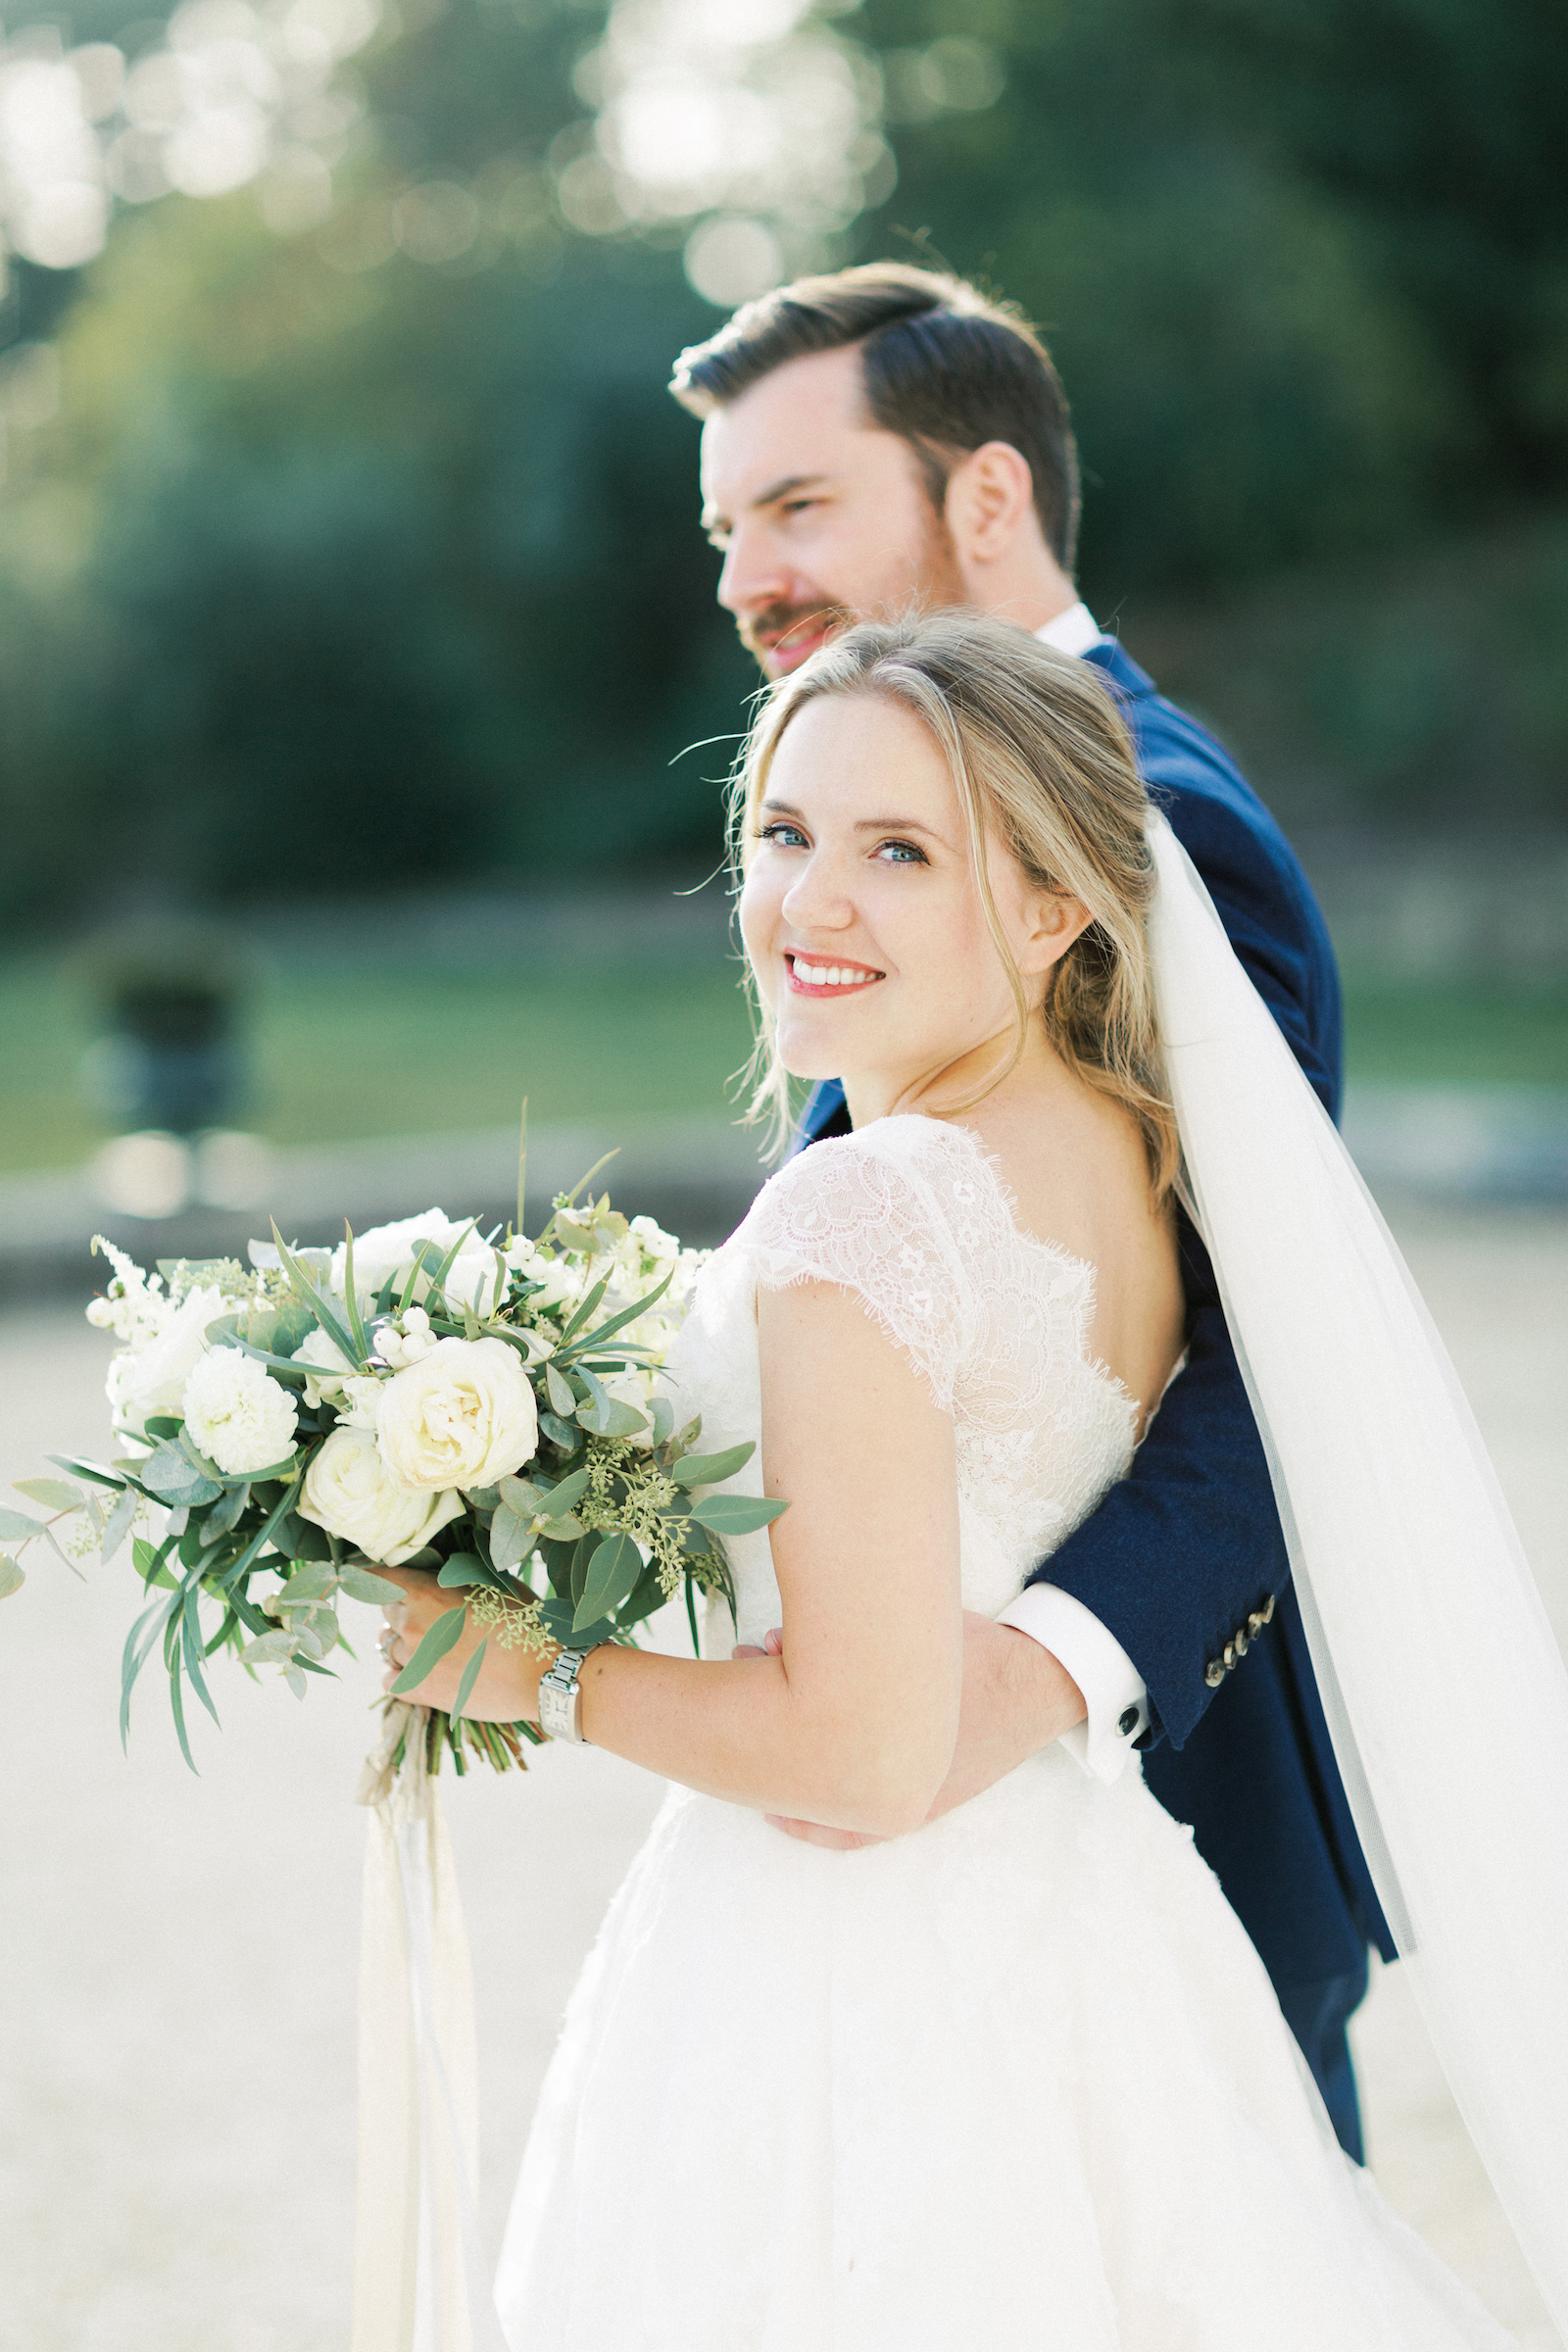 Lily & Sage_Luxury Wedding Planner UK_Sophie & Chris' English Country House Wedding Soft Pale Blue White and Silver Toned Green Neutral Tones Overseas Singapore Pynes House_Andrew & Ada Photography248.jpg